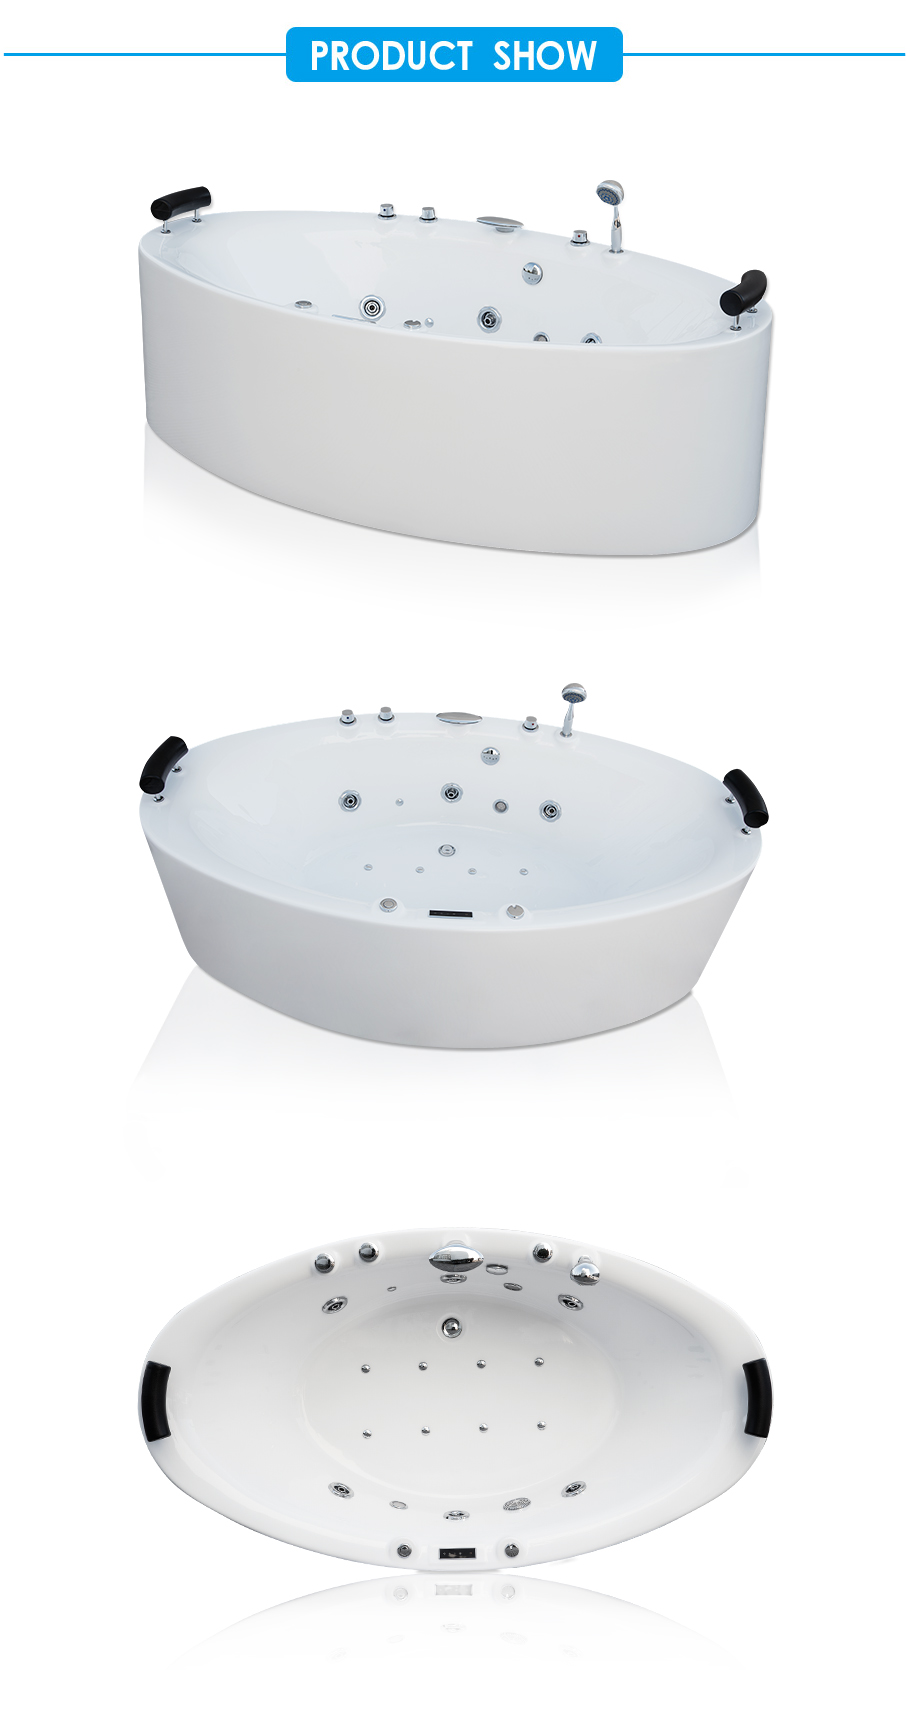 Lover Two Bathers Freestanding Whirlpool Bath Tub